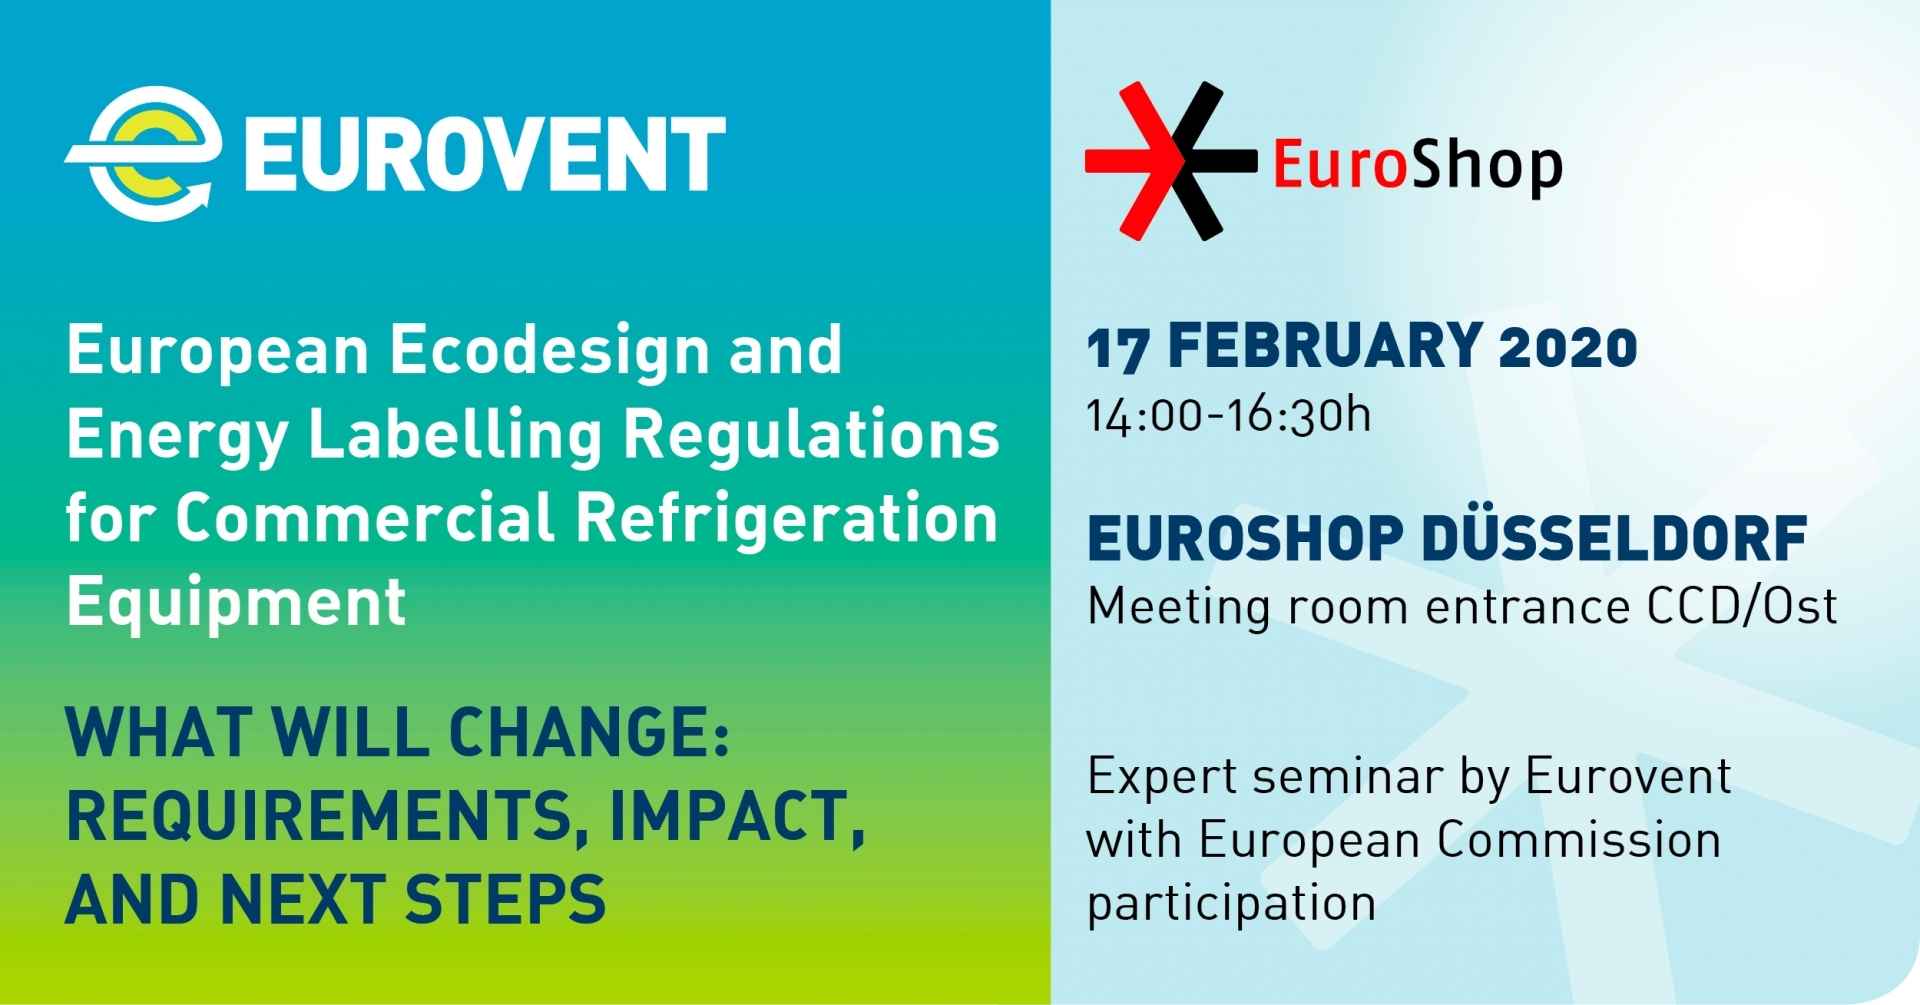 2020 - Eurovent to host expert seminar at EuroShop 2020